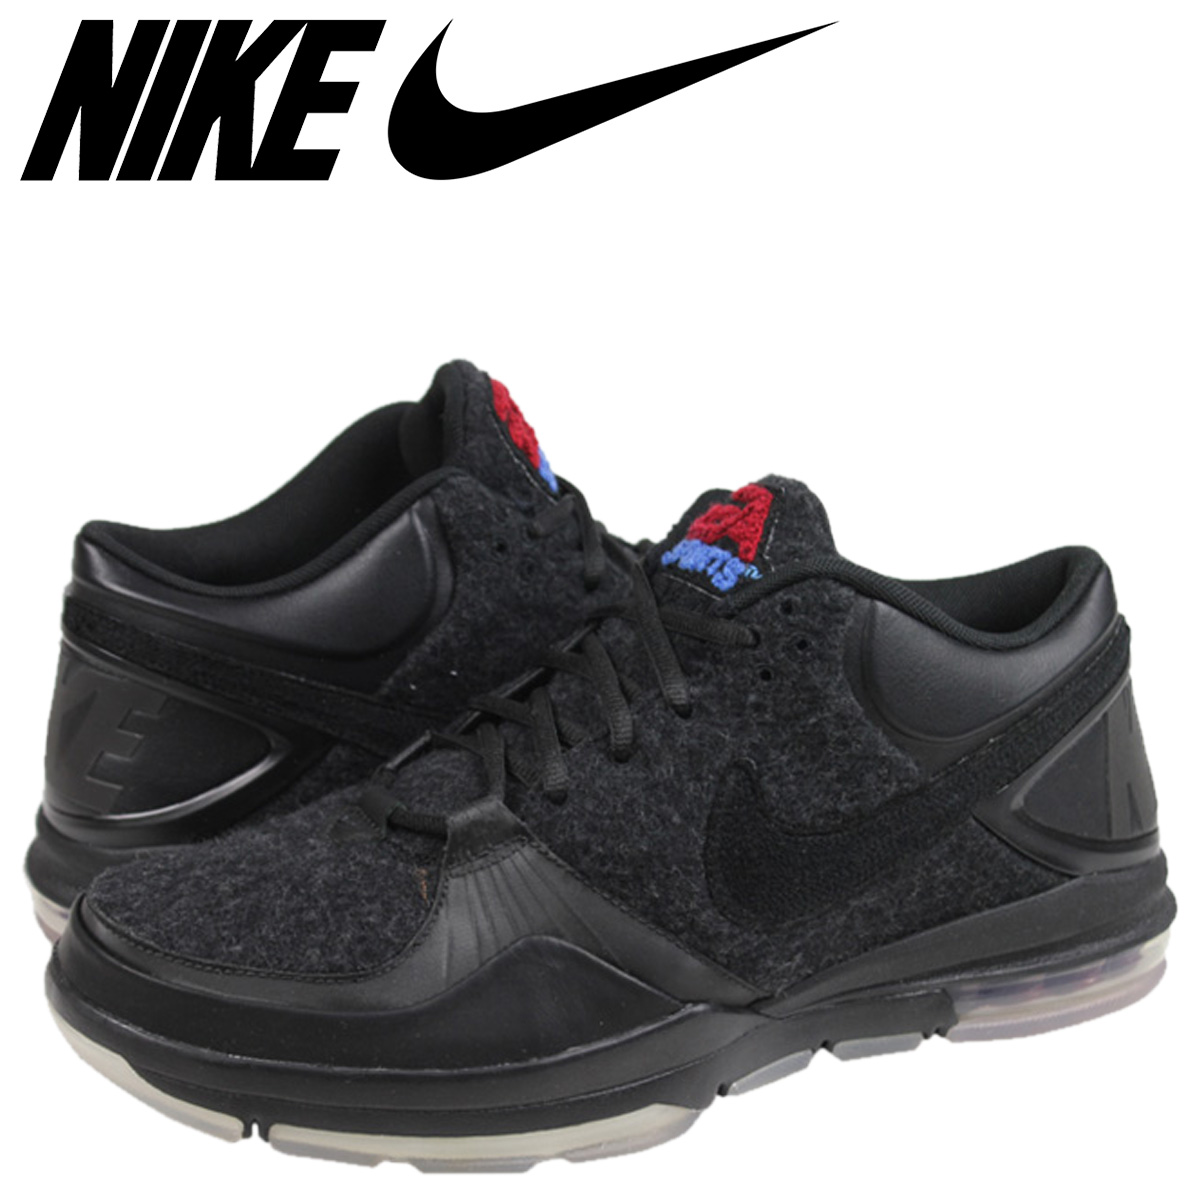 ナイキ NIKE トレーナー 1.3 スニーカー TRAINER 1.3 MID EA SPORTS BLACK MID EA SPORTS 黒 11 【zzi】【返品不可】